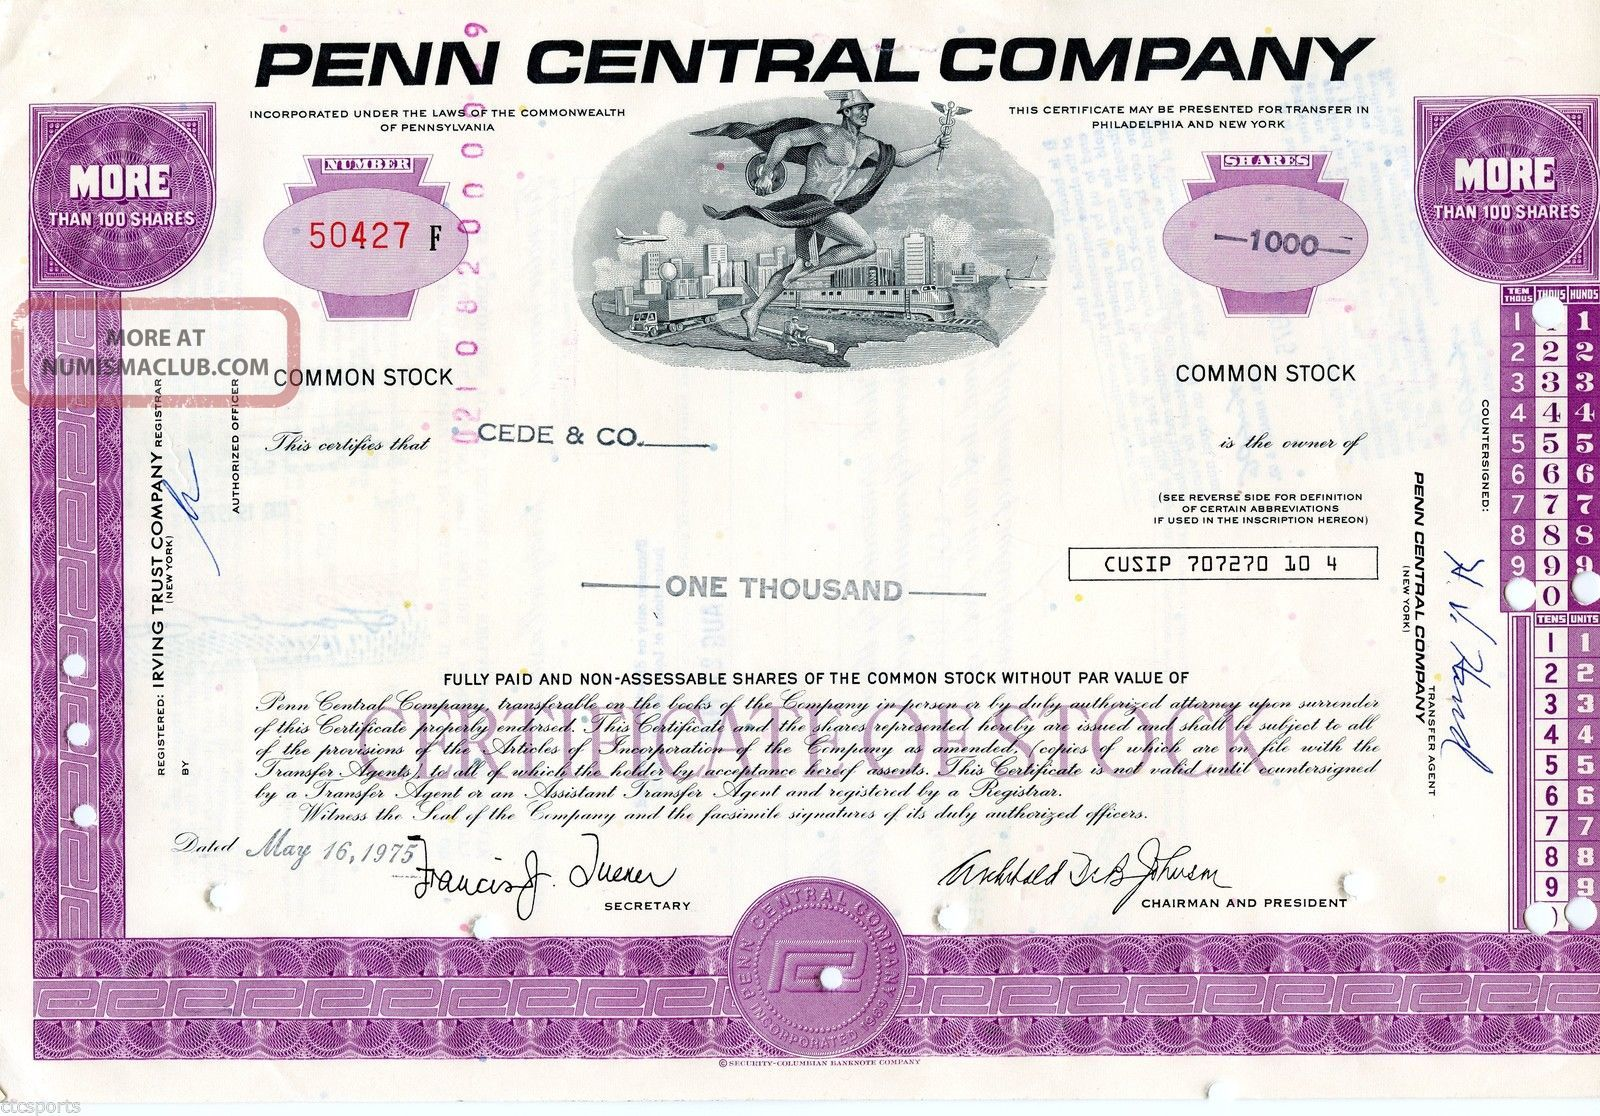 Penn Central Company (1,  000 Shares) 1975 Stock Cancelled Certificate Stocks & Bonds, Scripophily photo